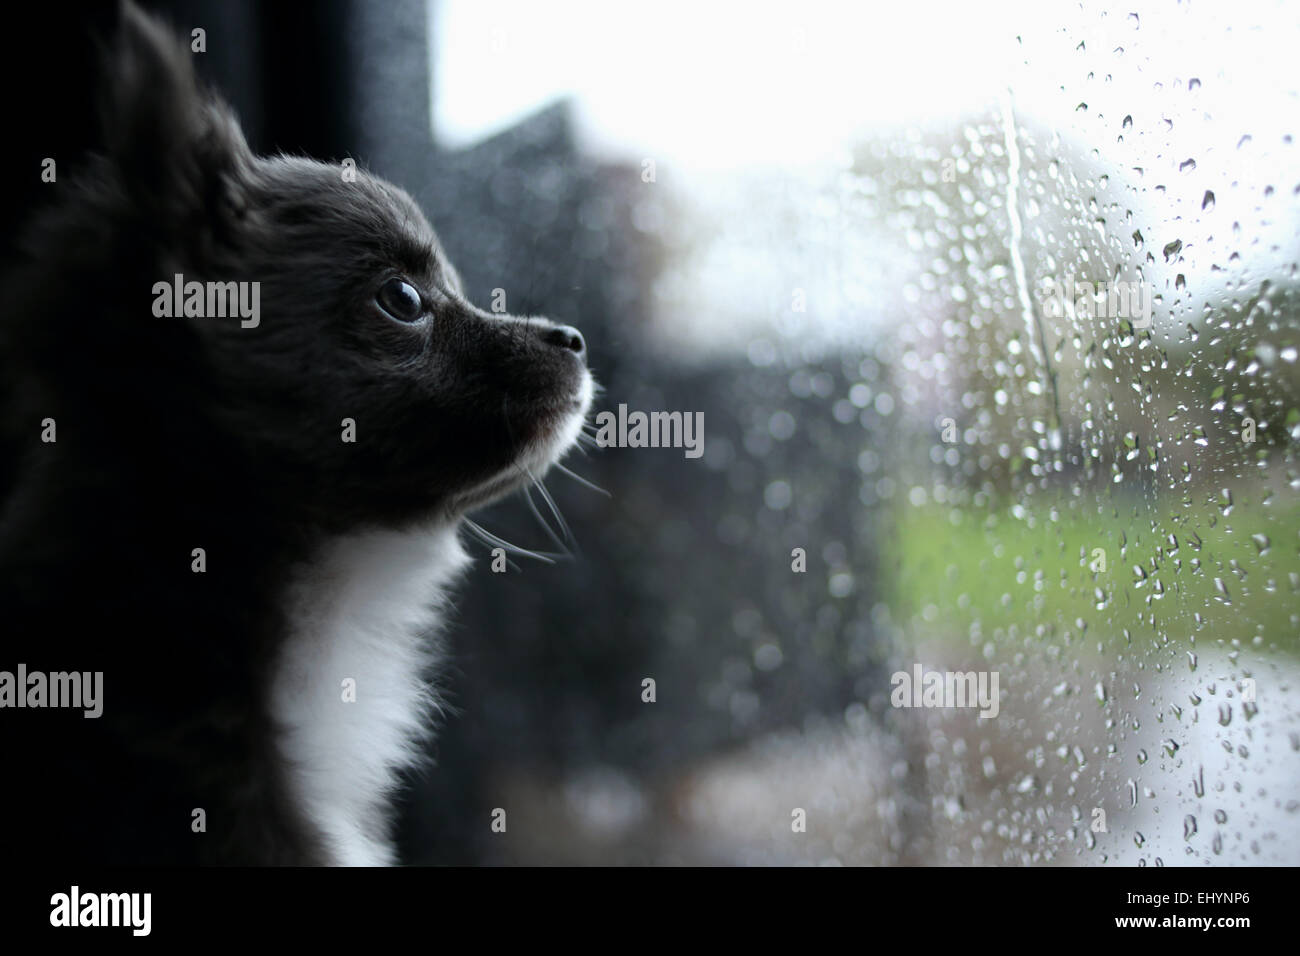 Chihuahua puppy looking through window - Stock Image